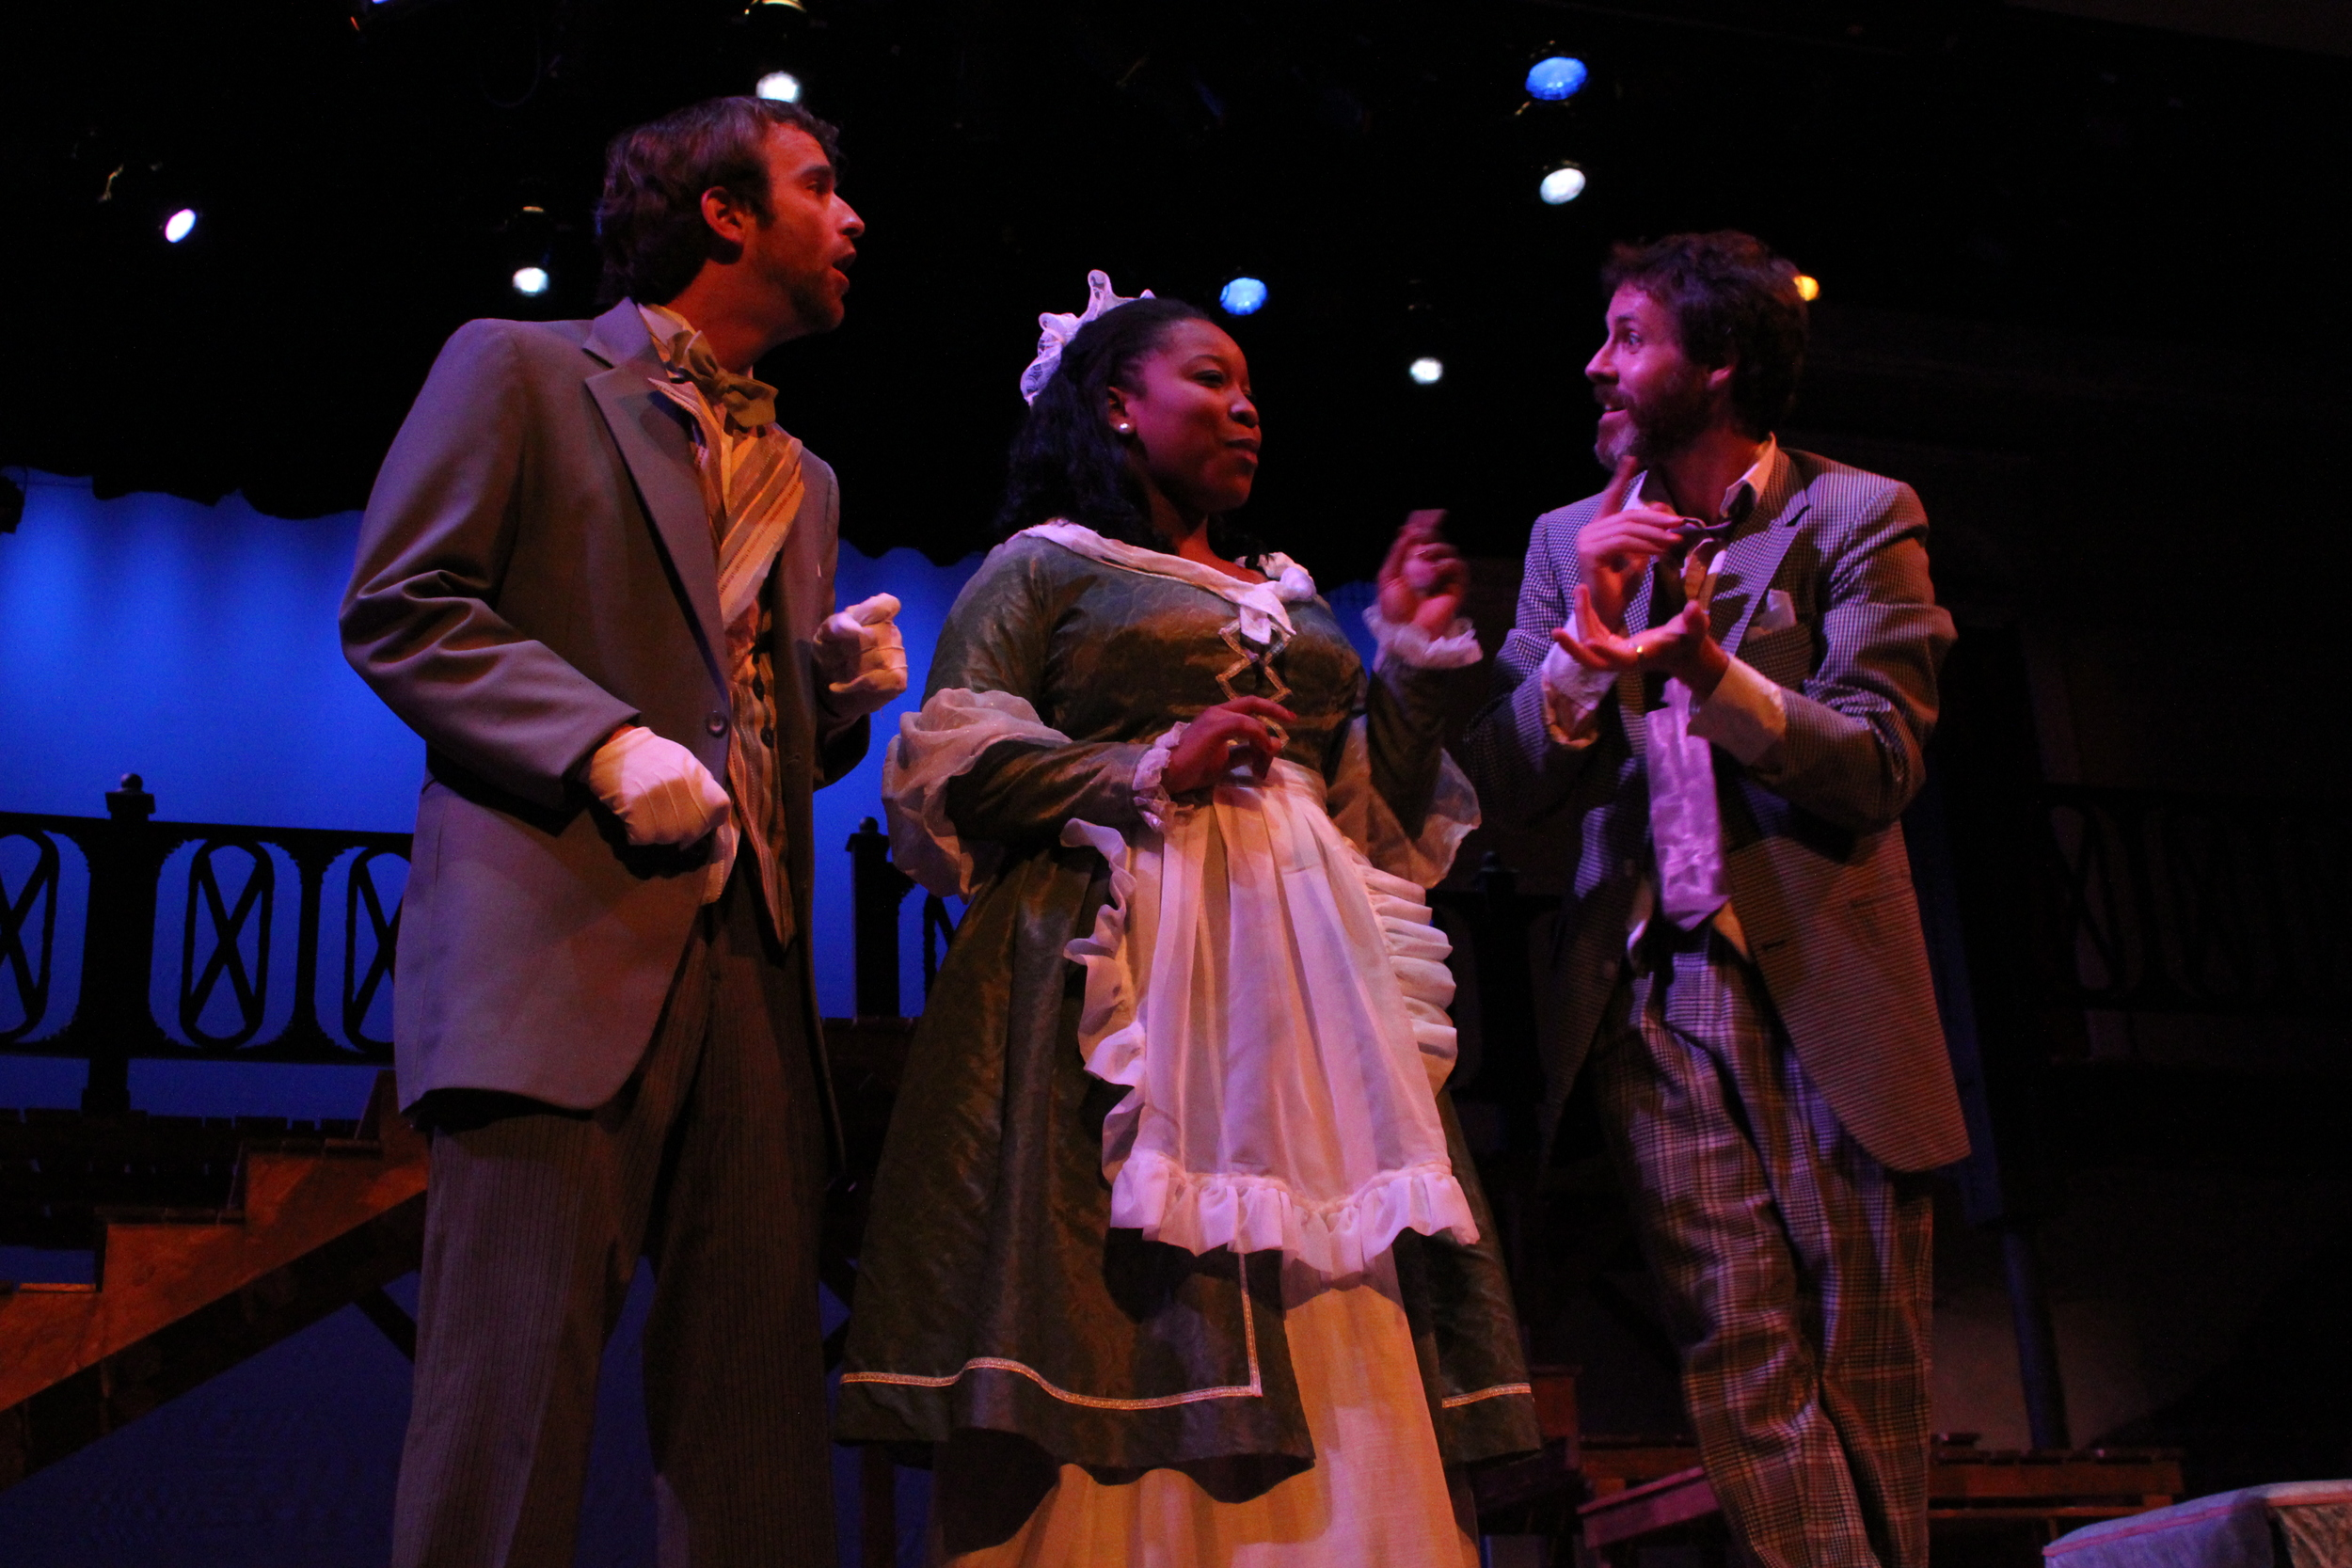 12th Night Maria, Andrew, Sir Toby 1.JPG